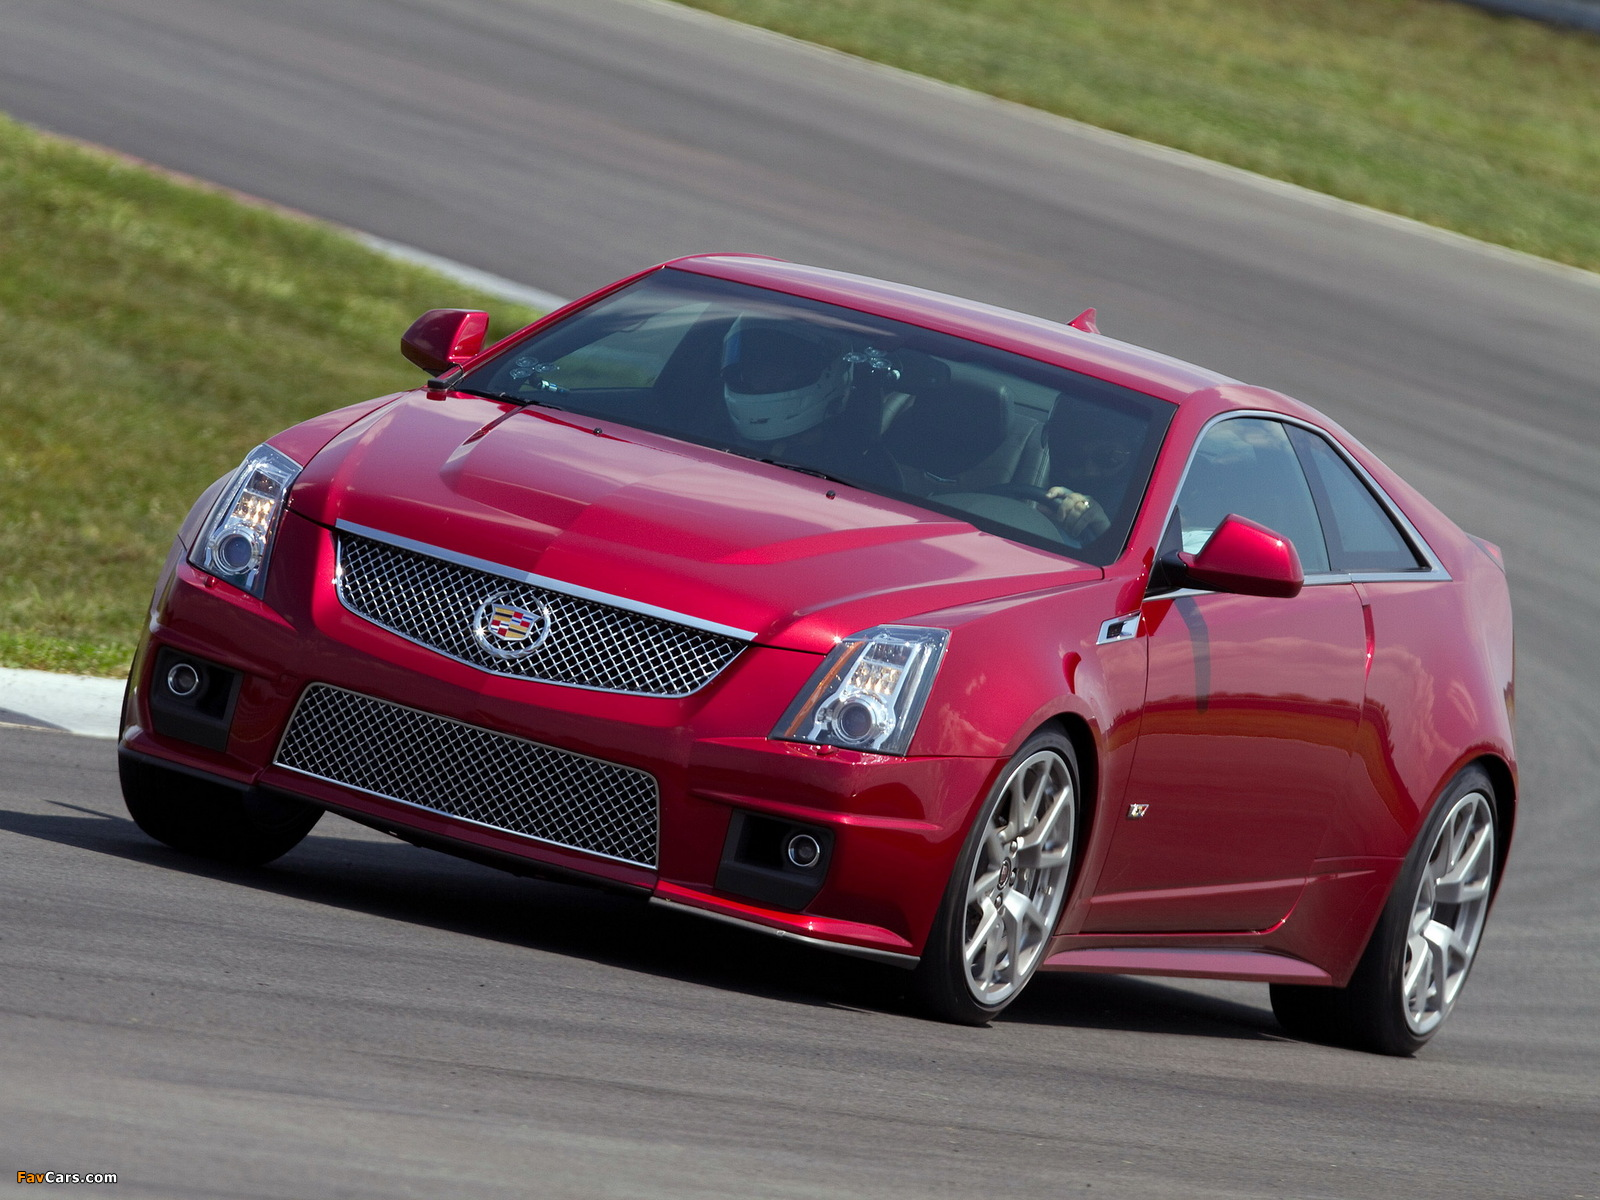 Cadillac CTS-V Coupe 2010 images (1600 x 1200)